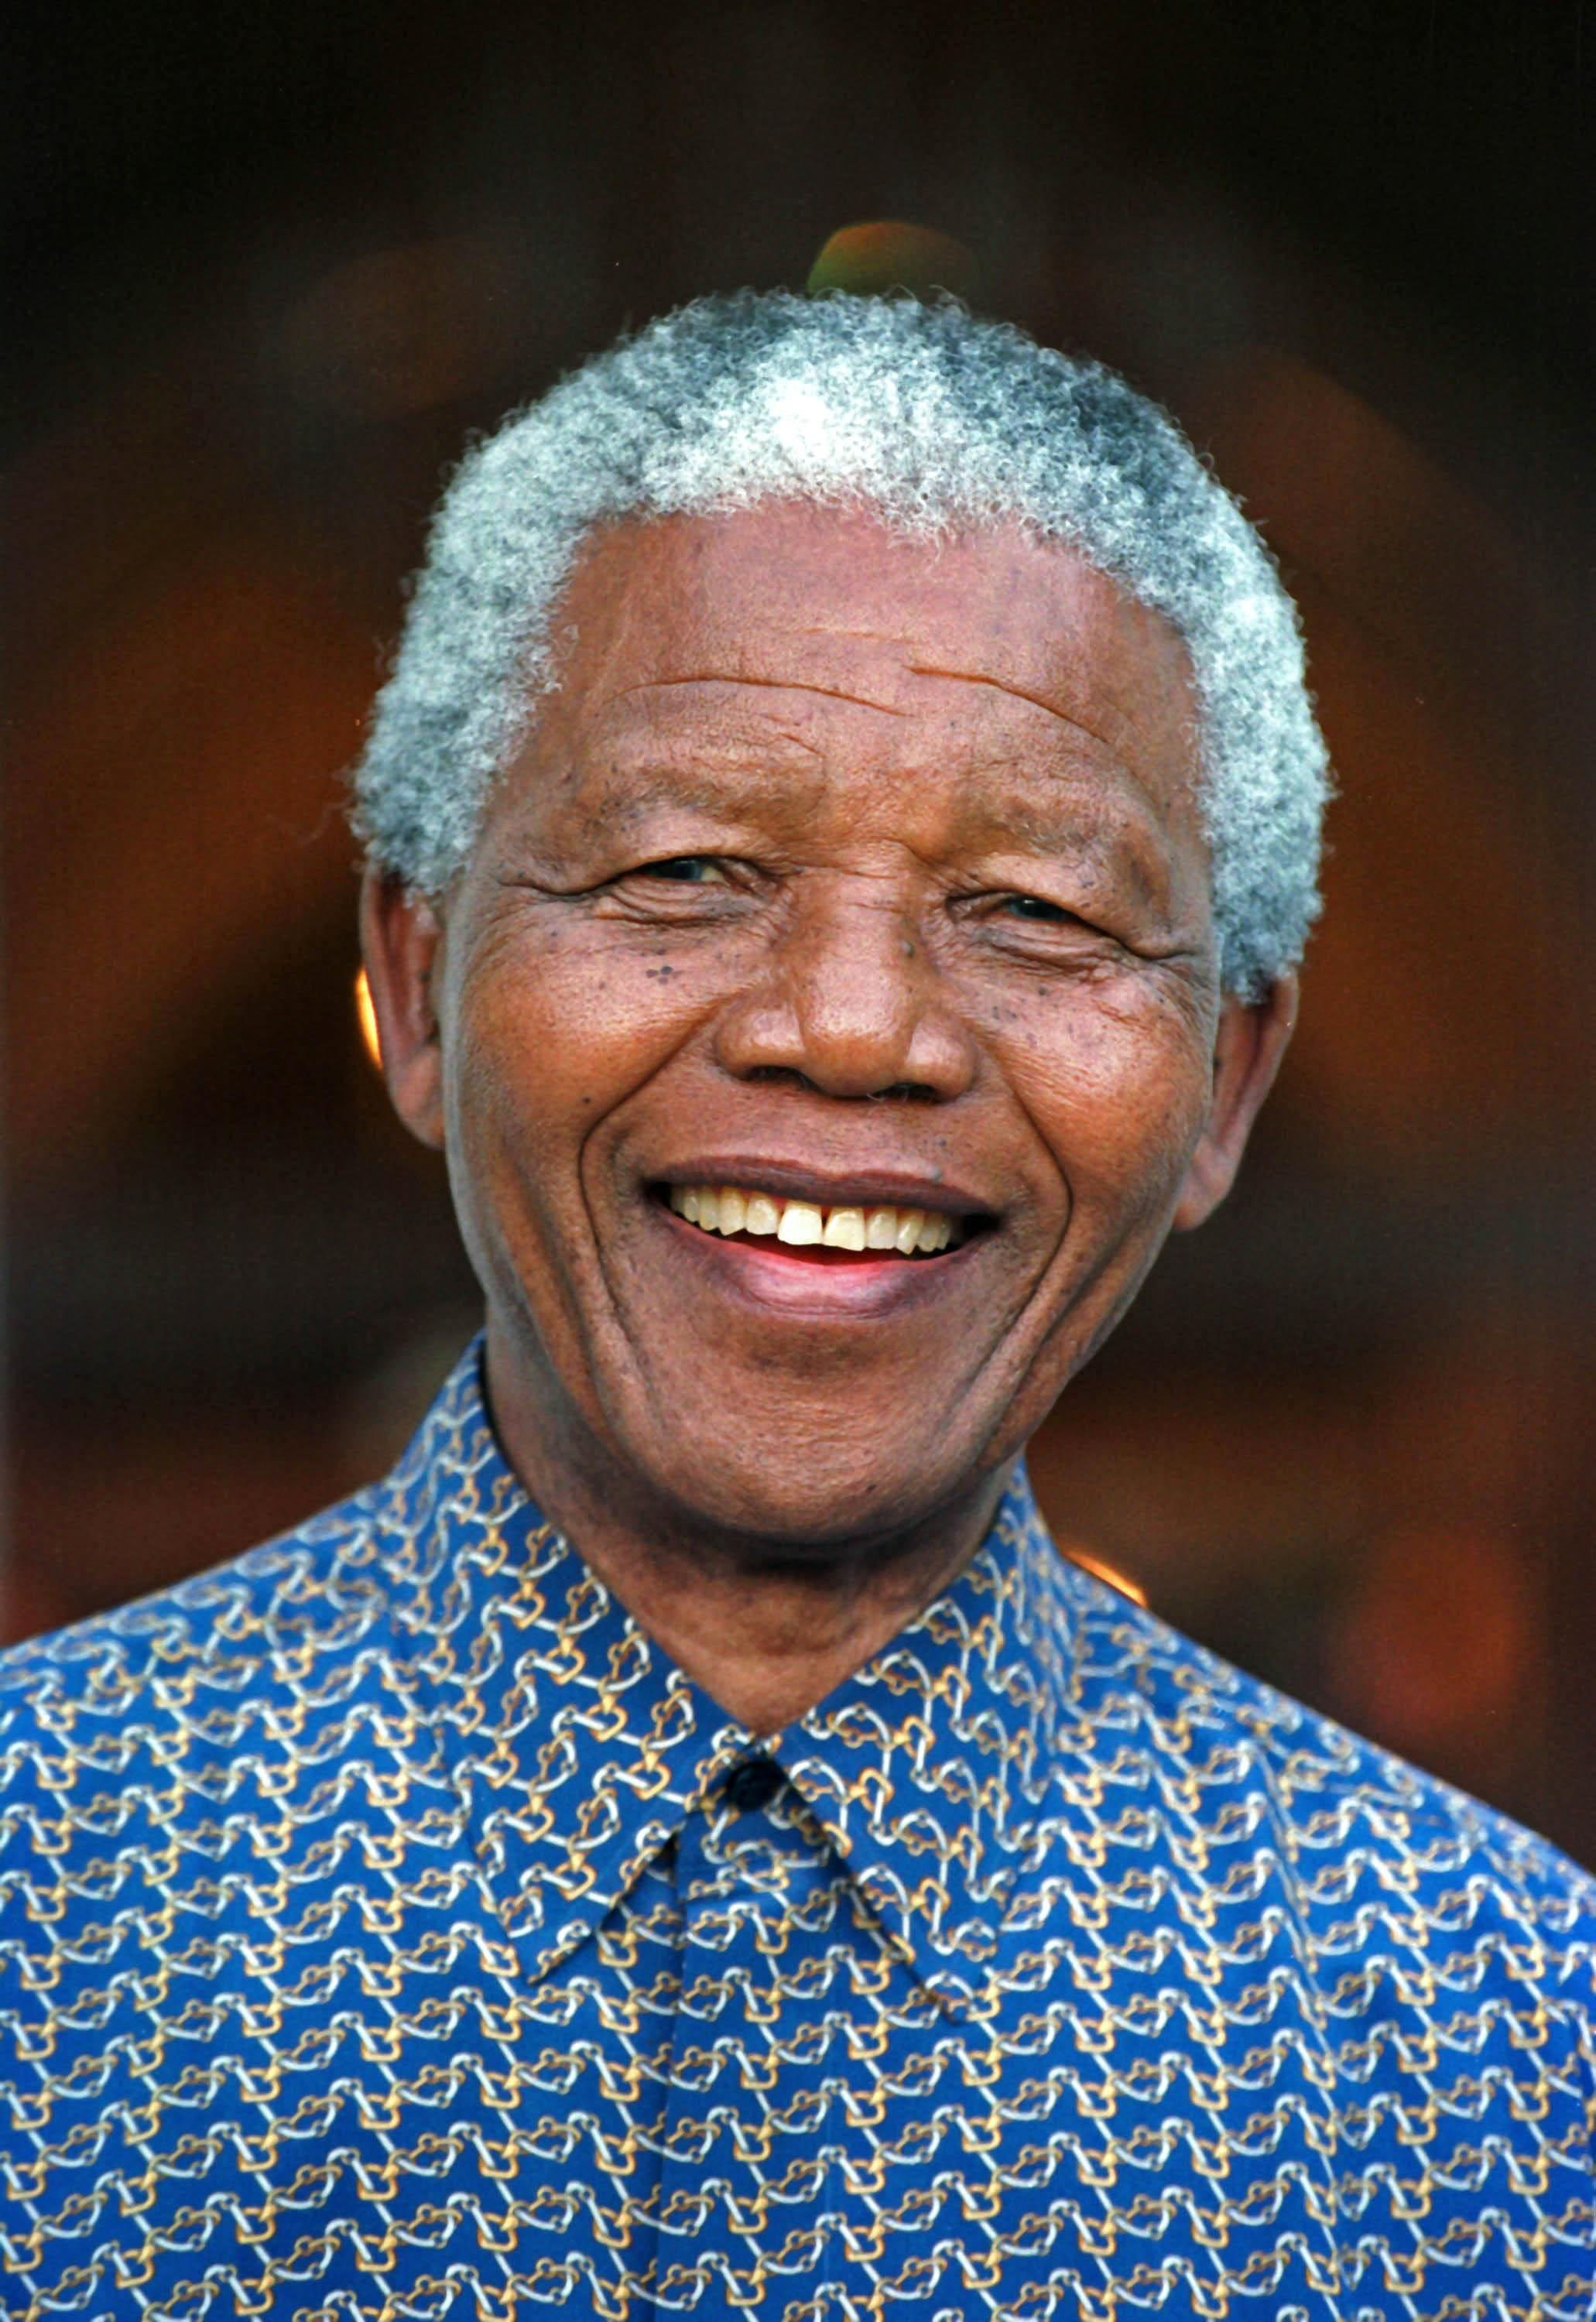 neslon mandela leadership Nelson mandela was the president of south africa from 1994-1999 he was the first black president of south africa, and the first president to be elected in a fully representative election.